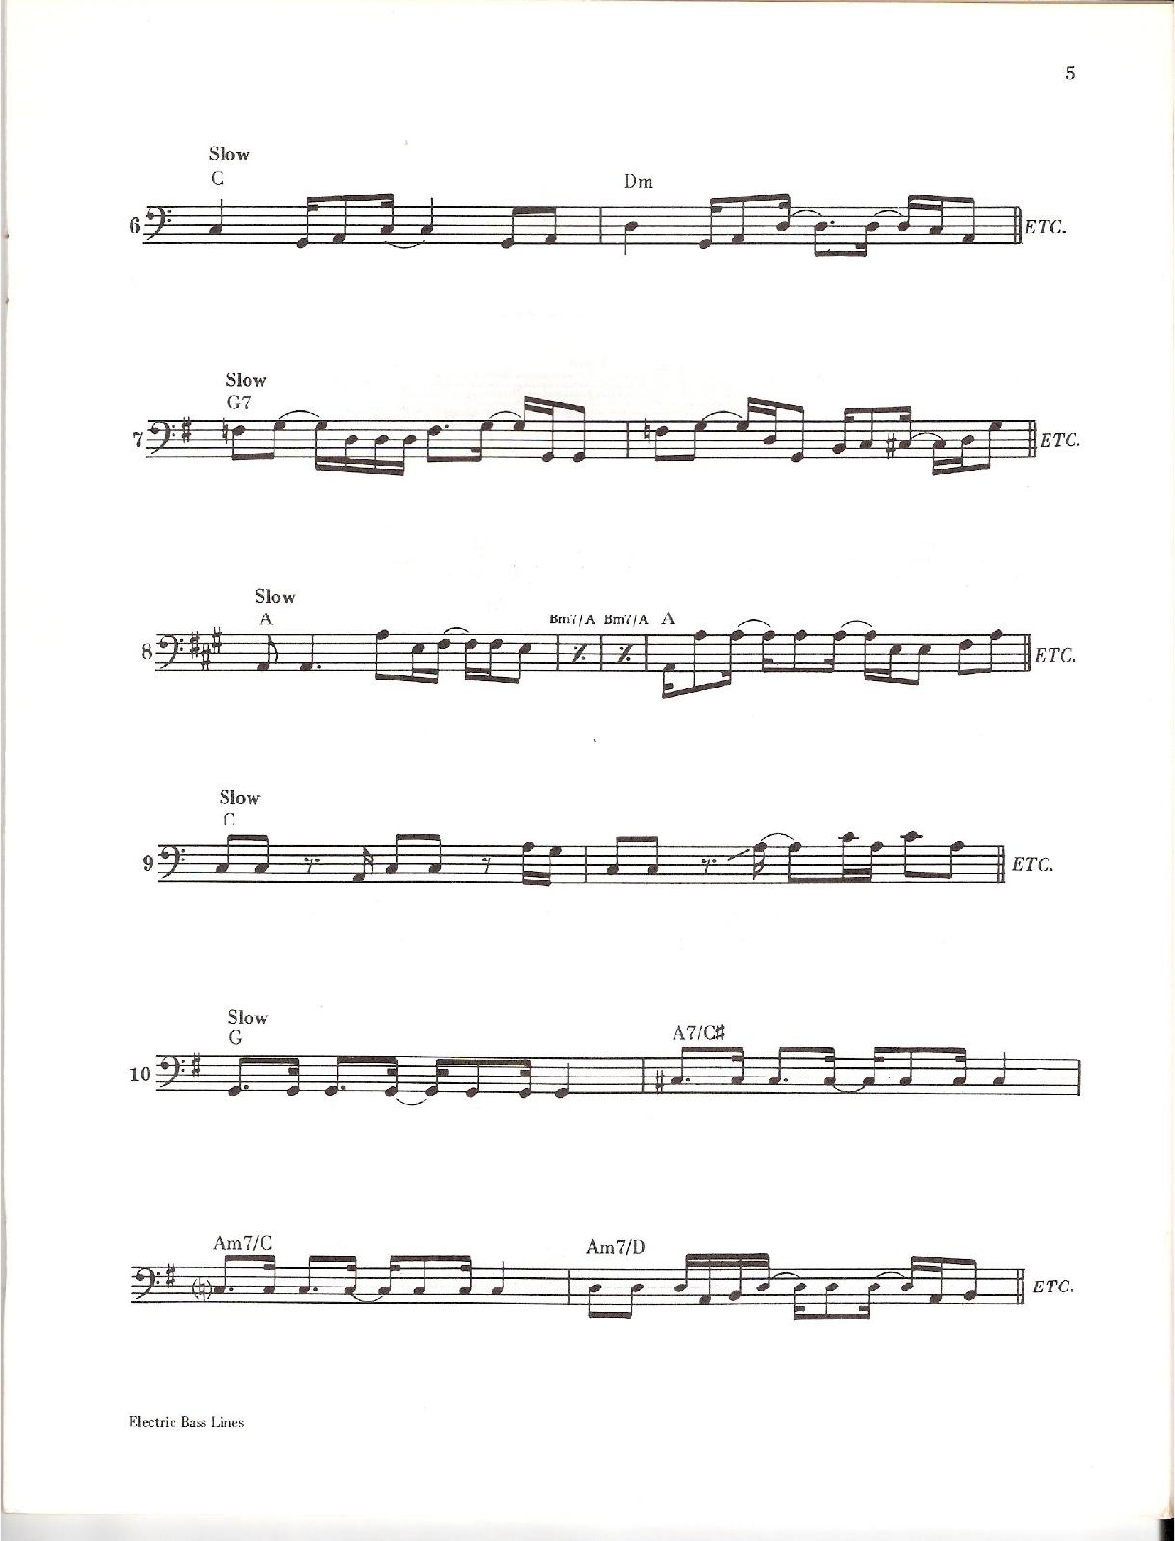 Carol Kaye - Electric Bass Lines No 1 PDF